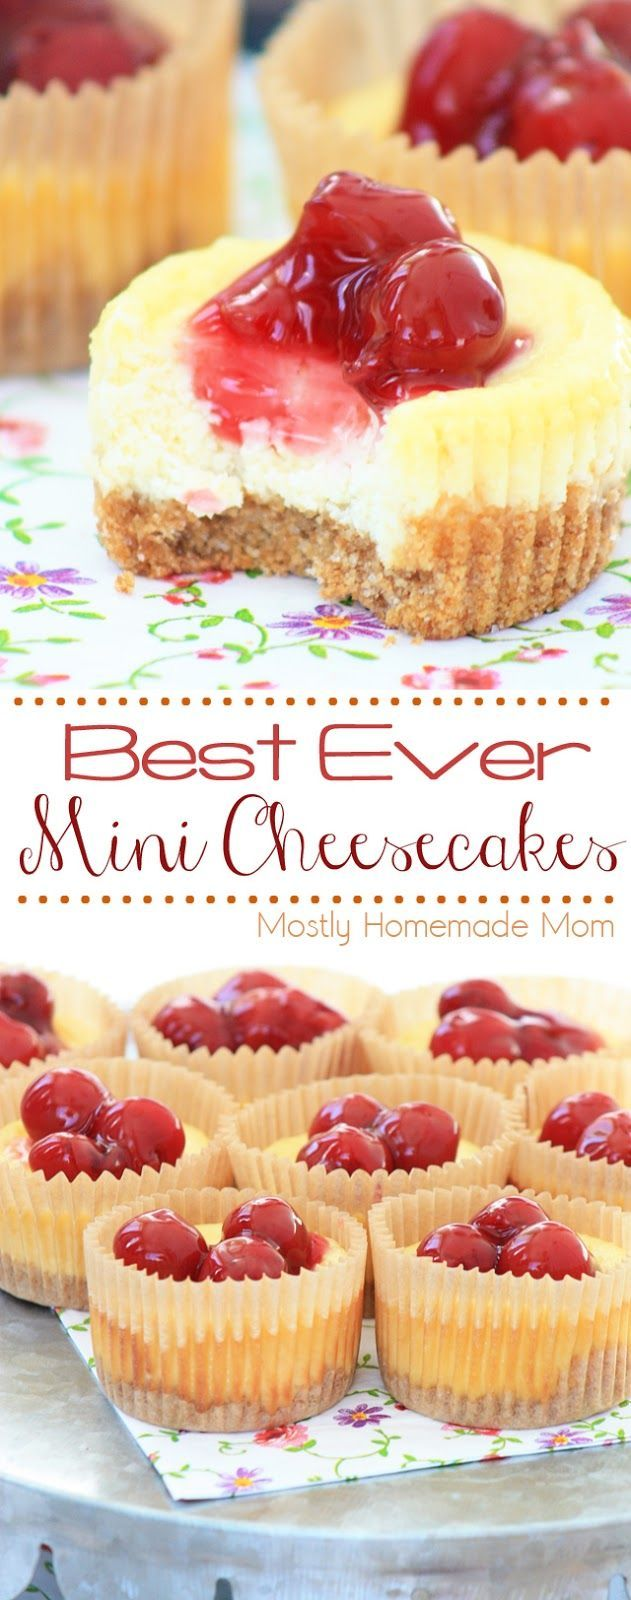 Best Ever Mini Cheesecakes - VIDEO post - Mostly Homemade Mom